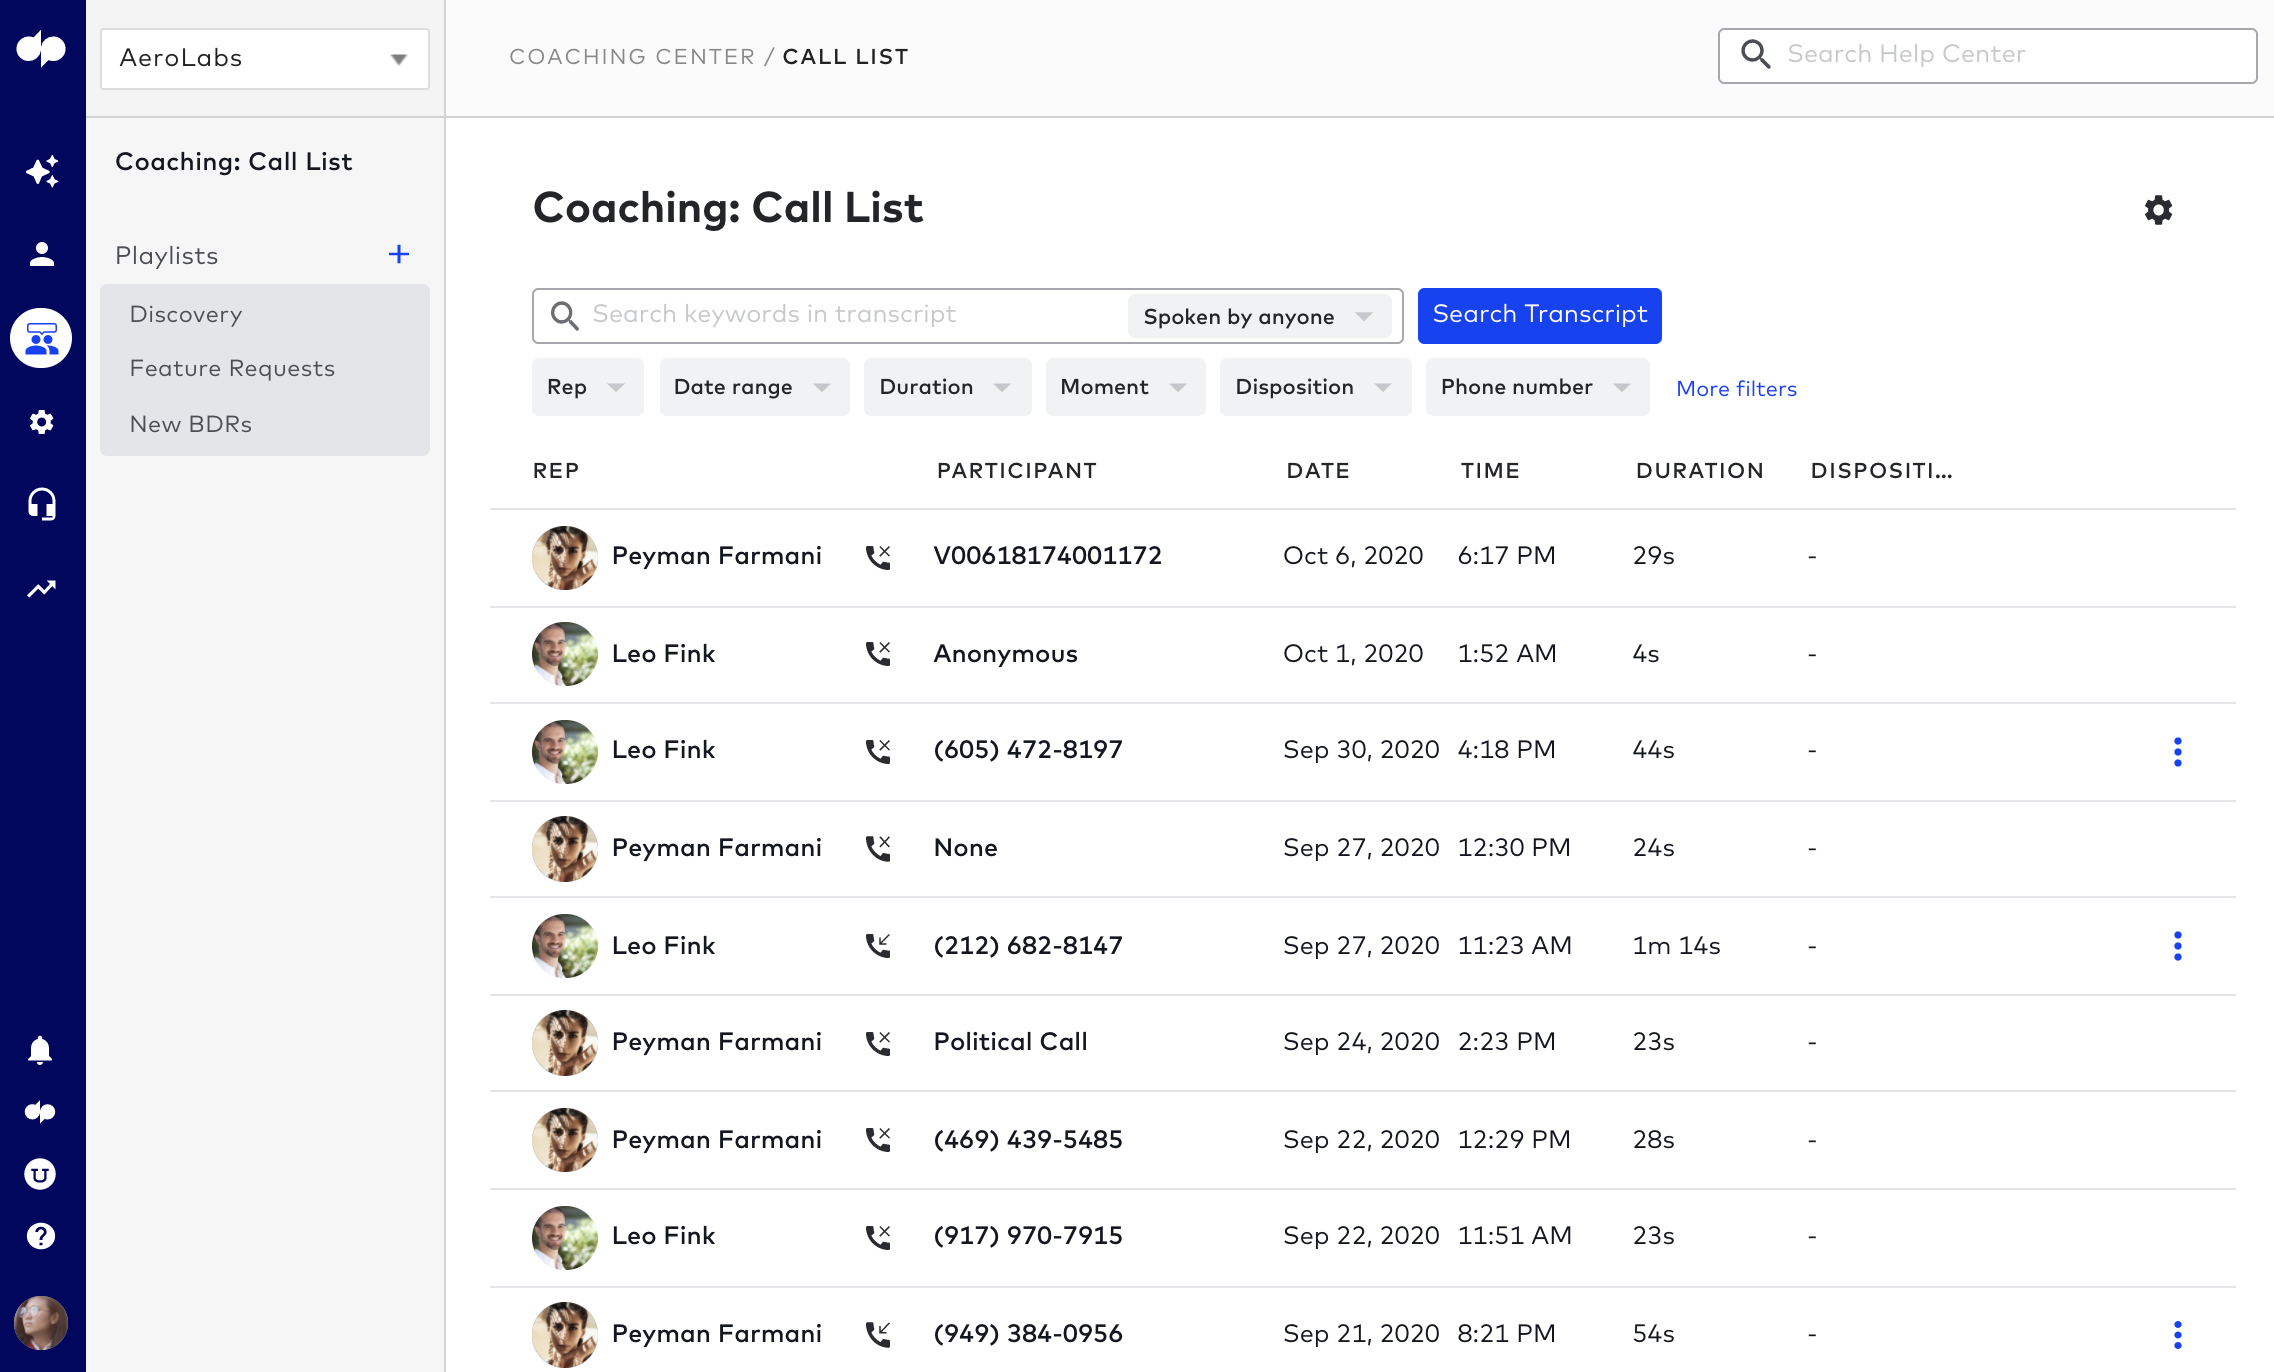 dp-coaching-group-calls-list.png